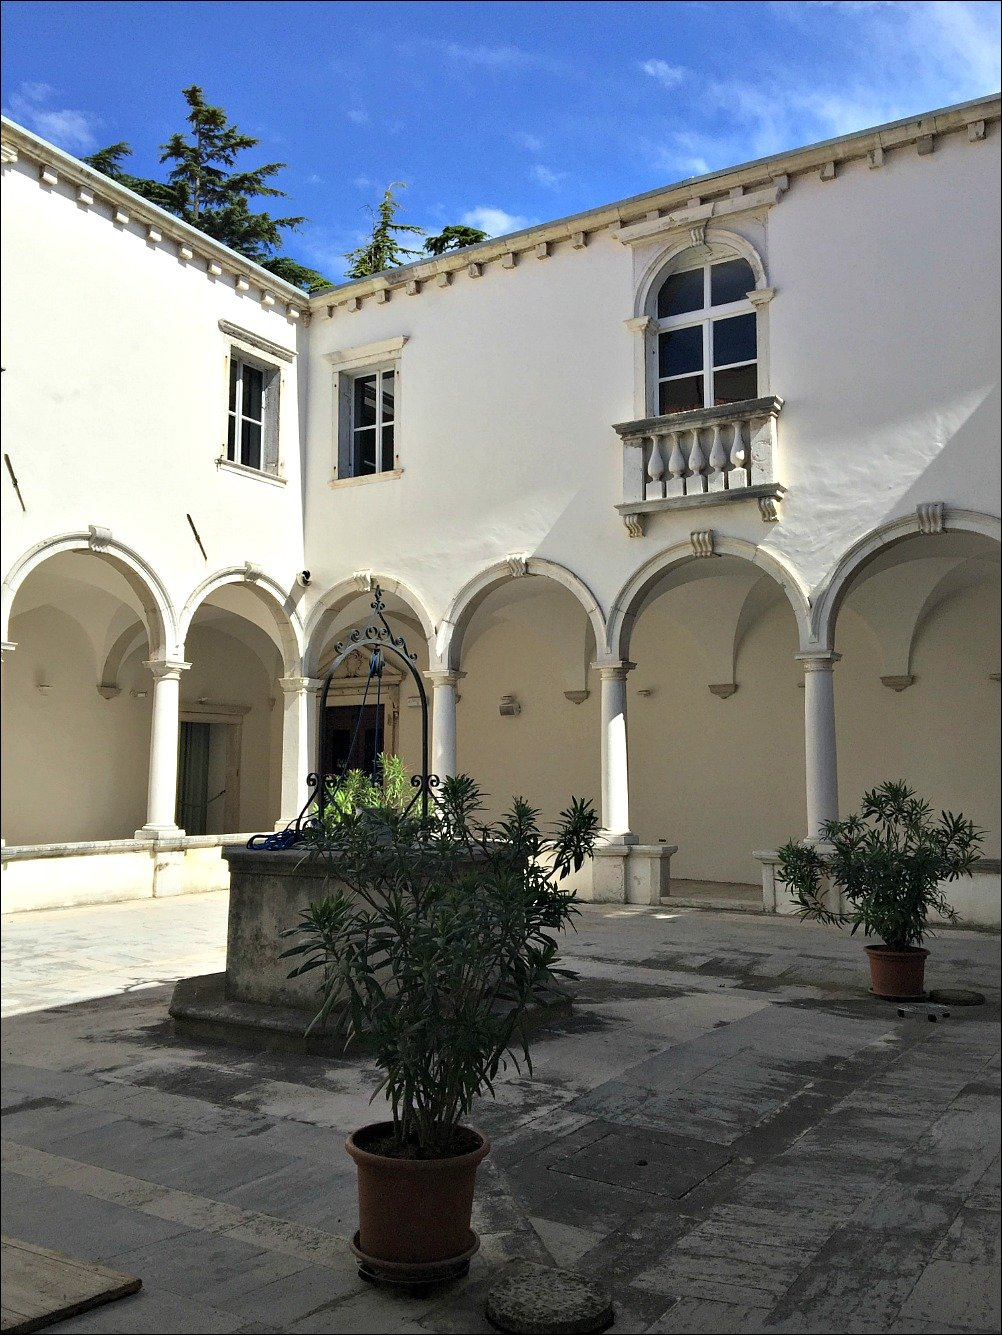 The cloister of the Friars Minor